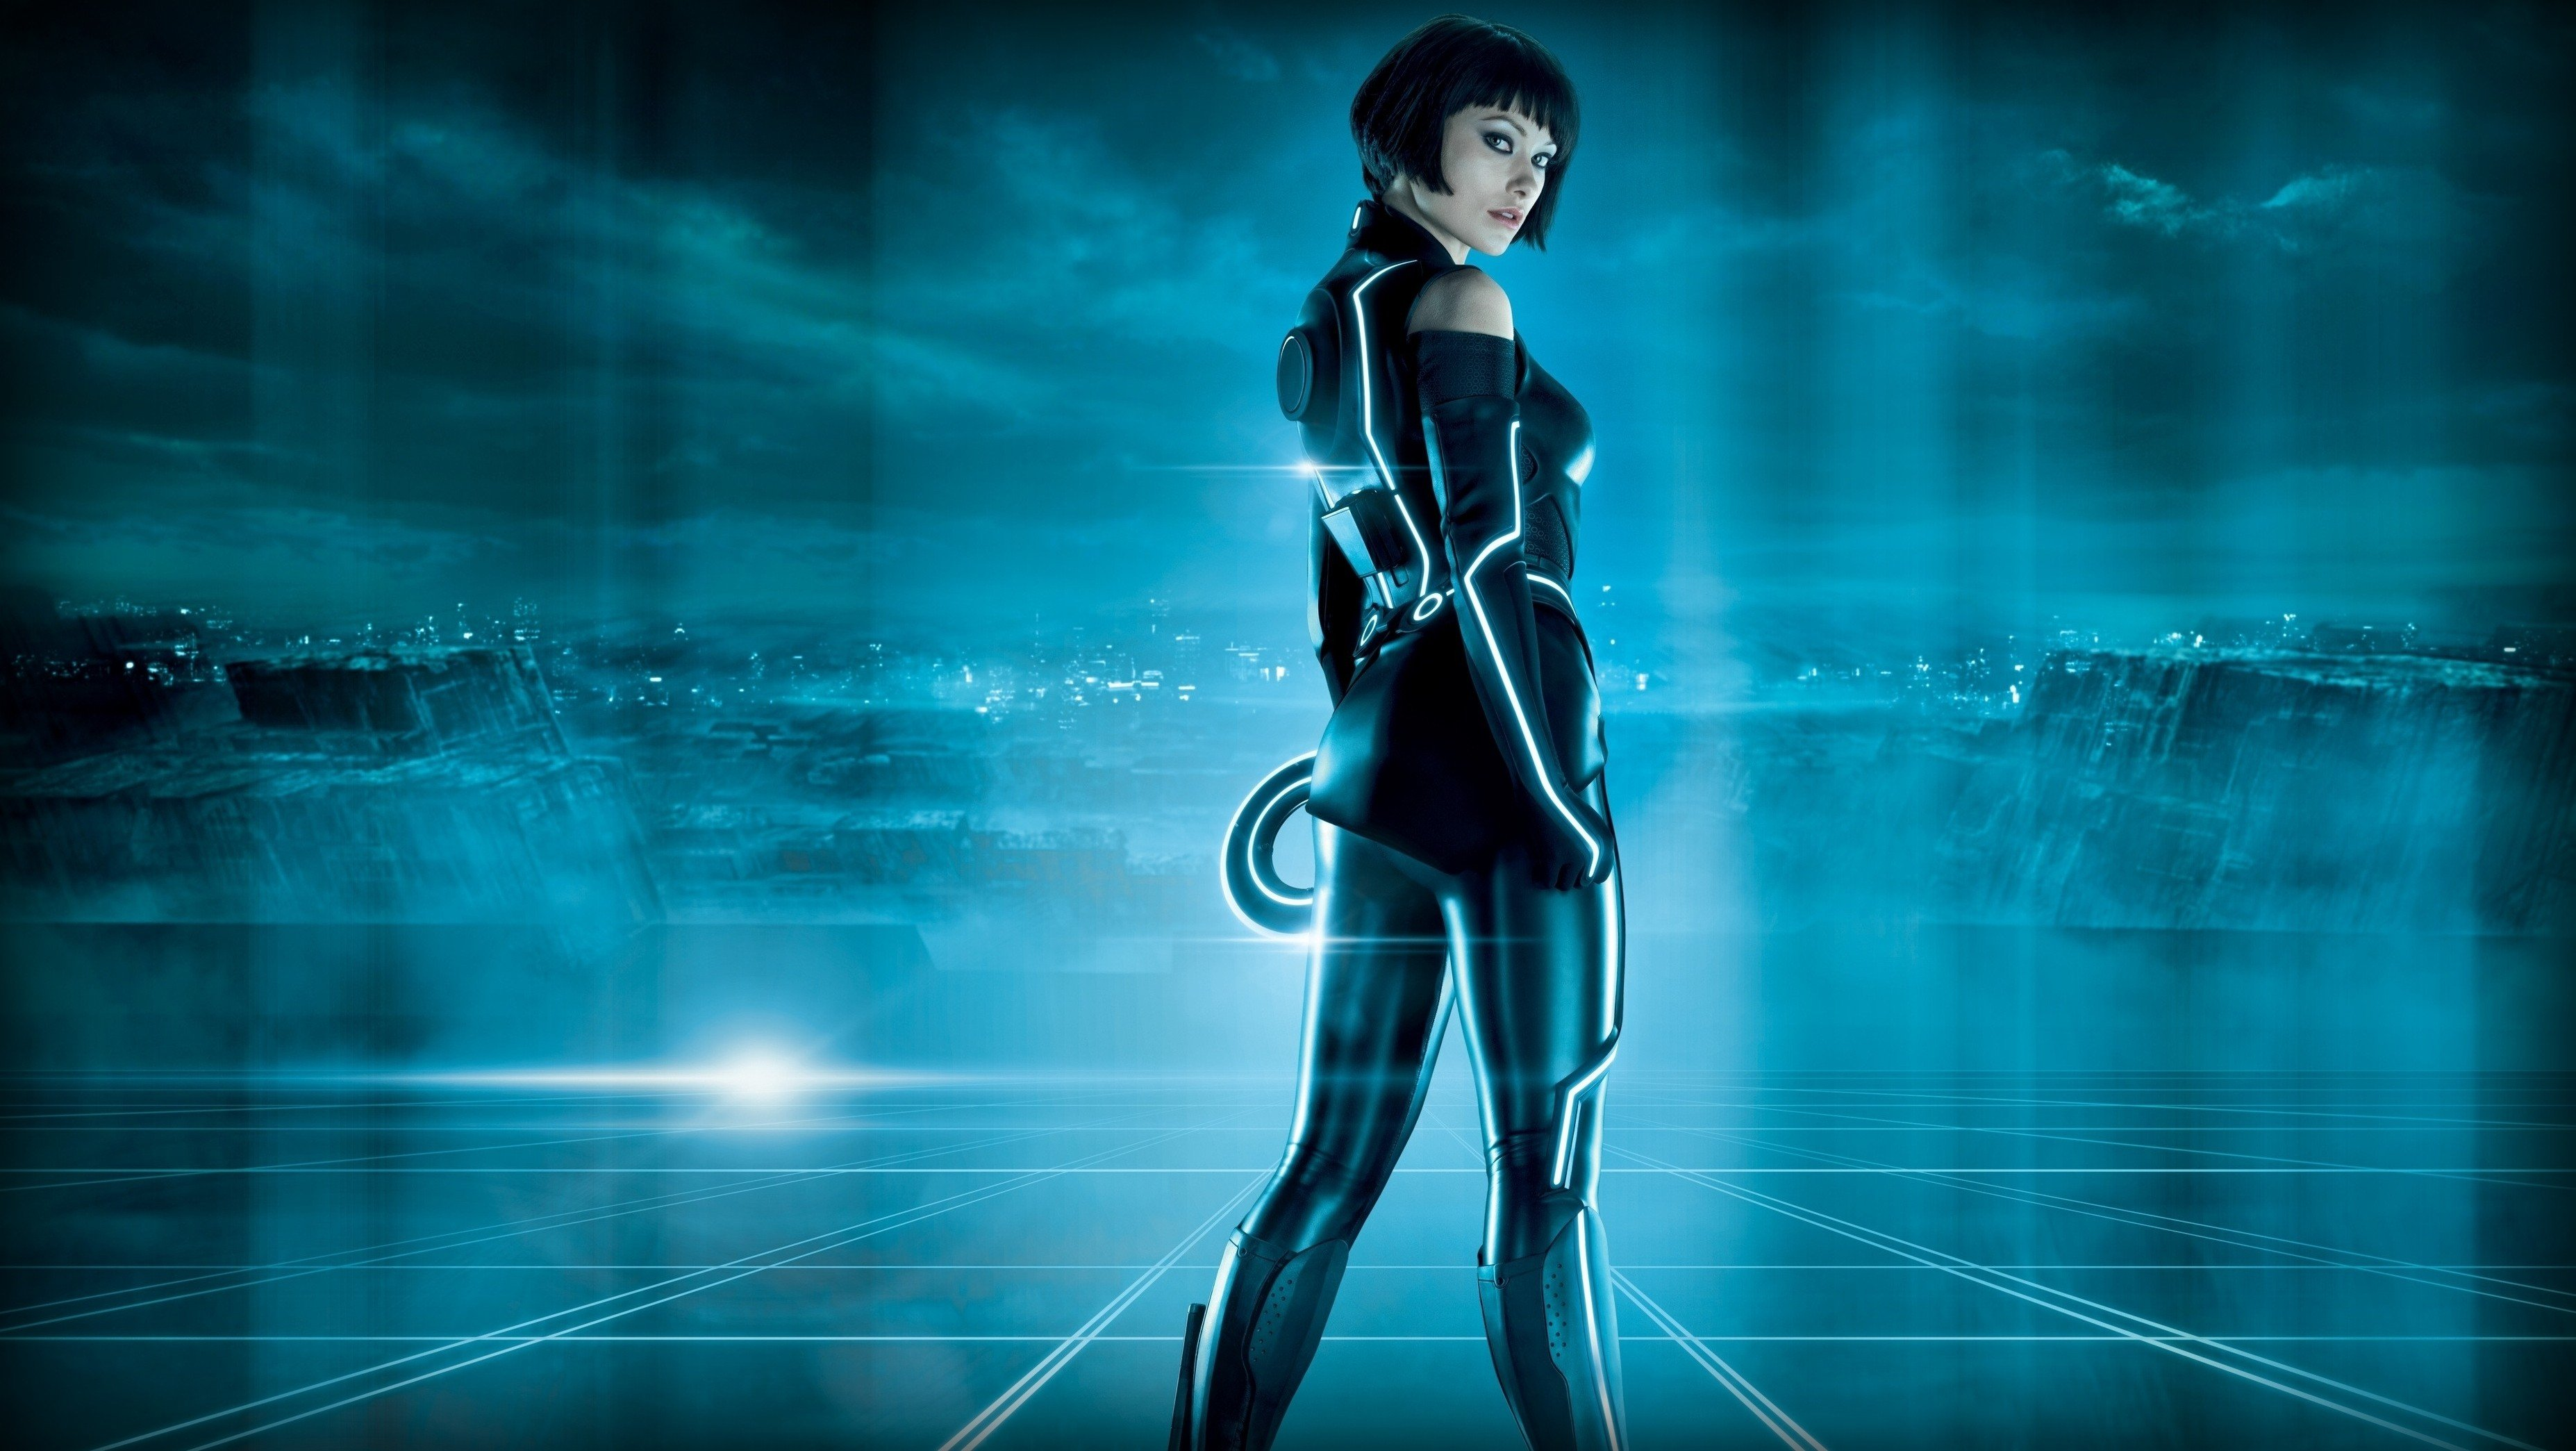 TRON action adventure sci-fi futuristic disney